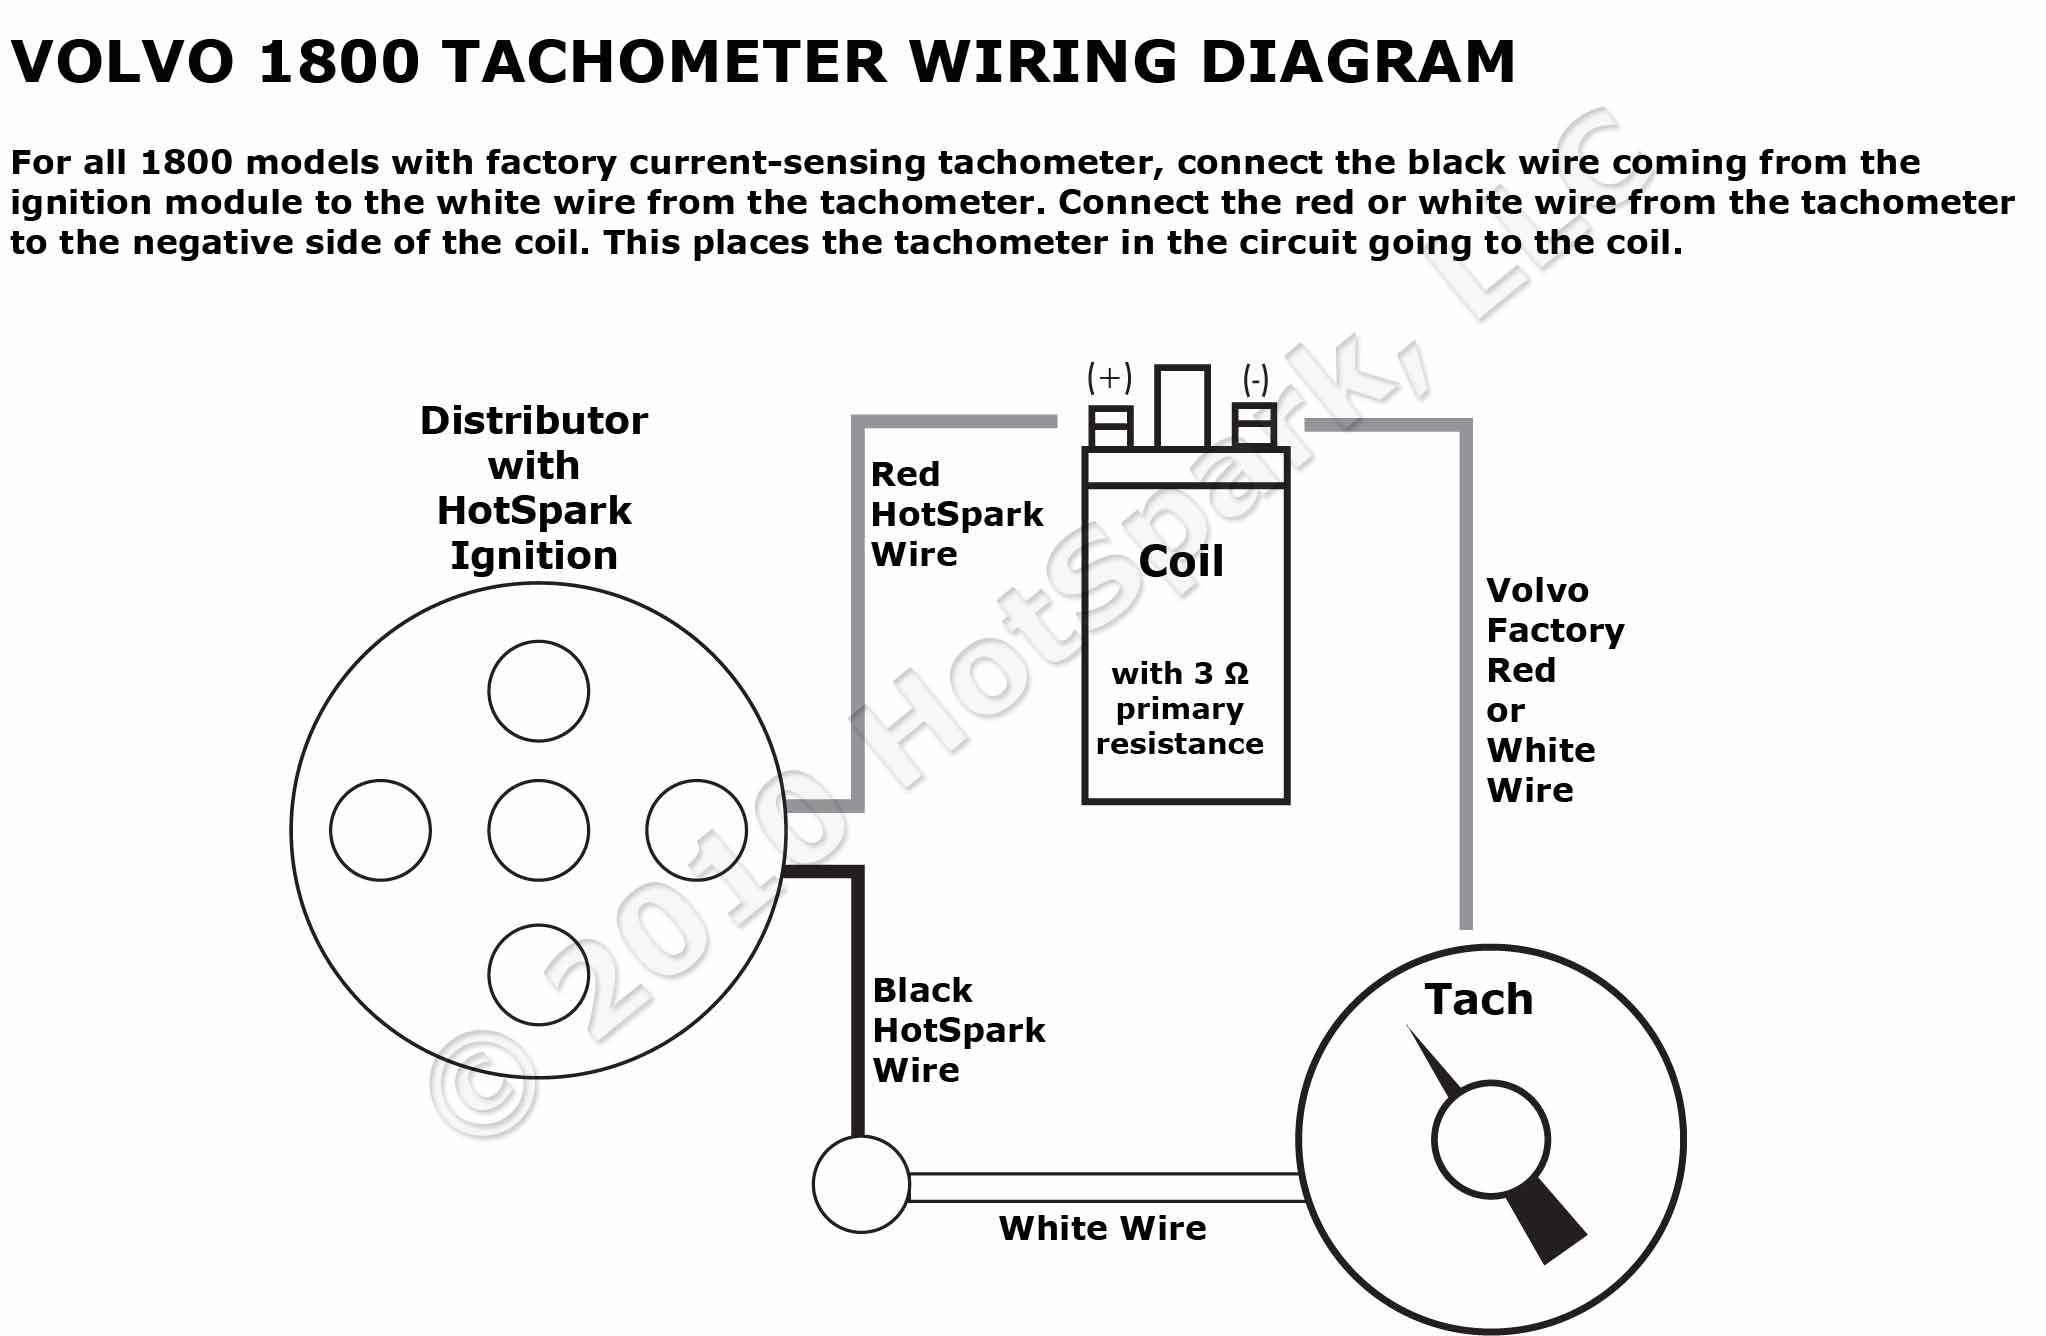 Volvo 1800 Tachometer and Hot Spark Wiring Diagram tachometer wiring diagram 1971 chevelle tachometer wiring diagram marine tachometer wiring diagram at bayanpartner.co